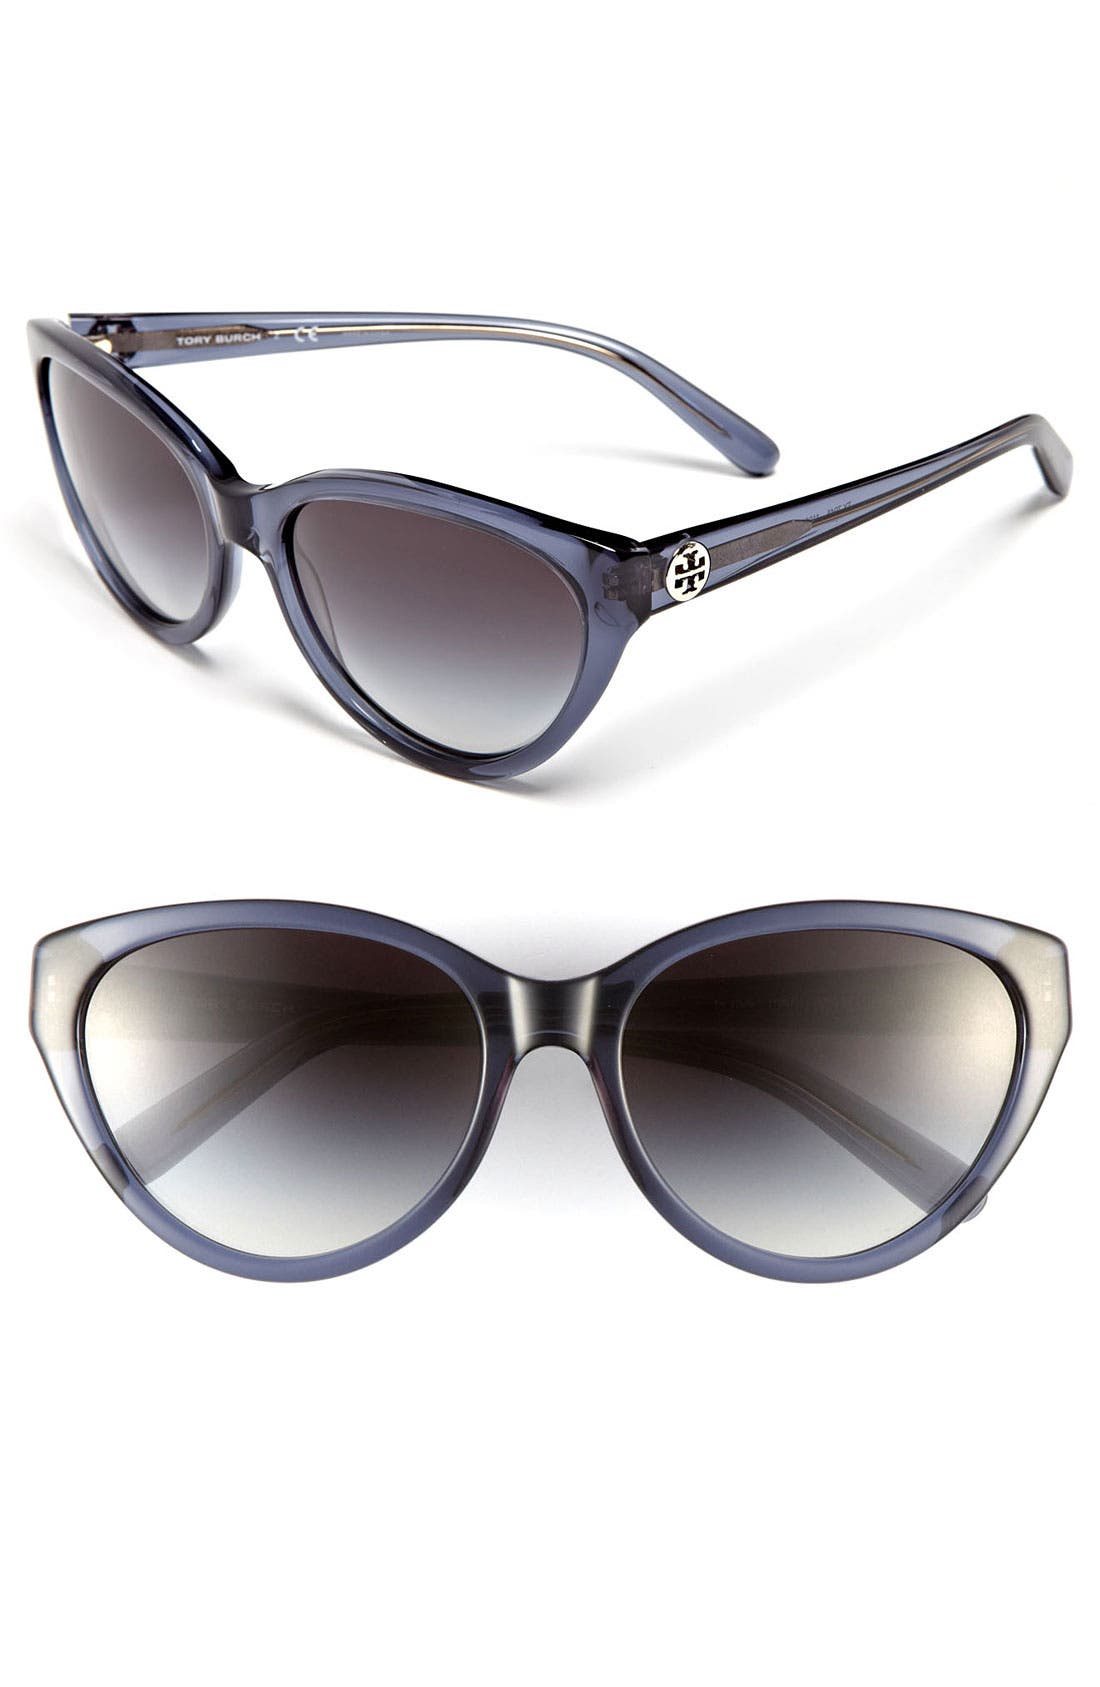 Alternate Image 1 Selected - Tory Burch 57mm Retro Sunglasses